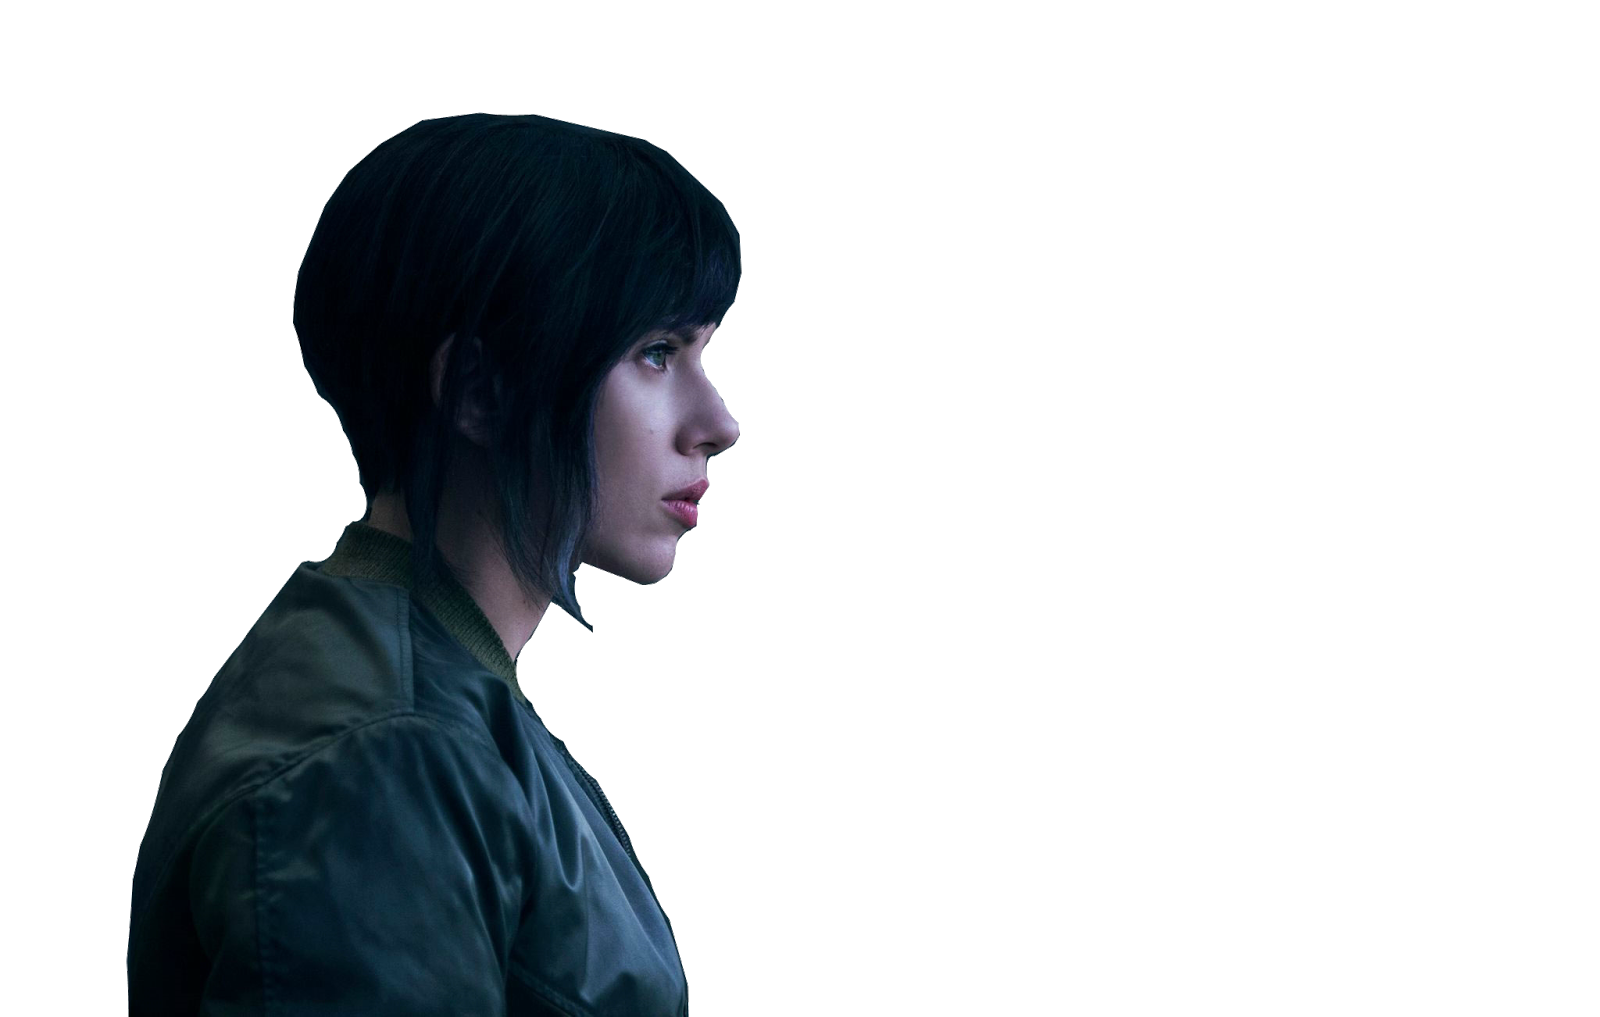 Png Ghost In The Shell Movie Scarlett 1146587 Png Images Pngio